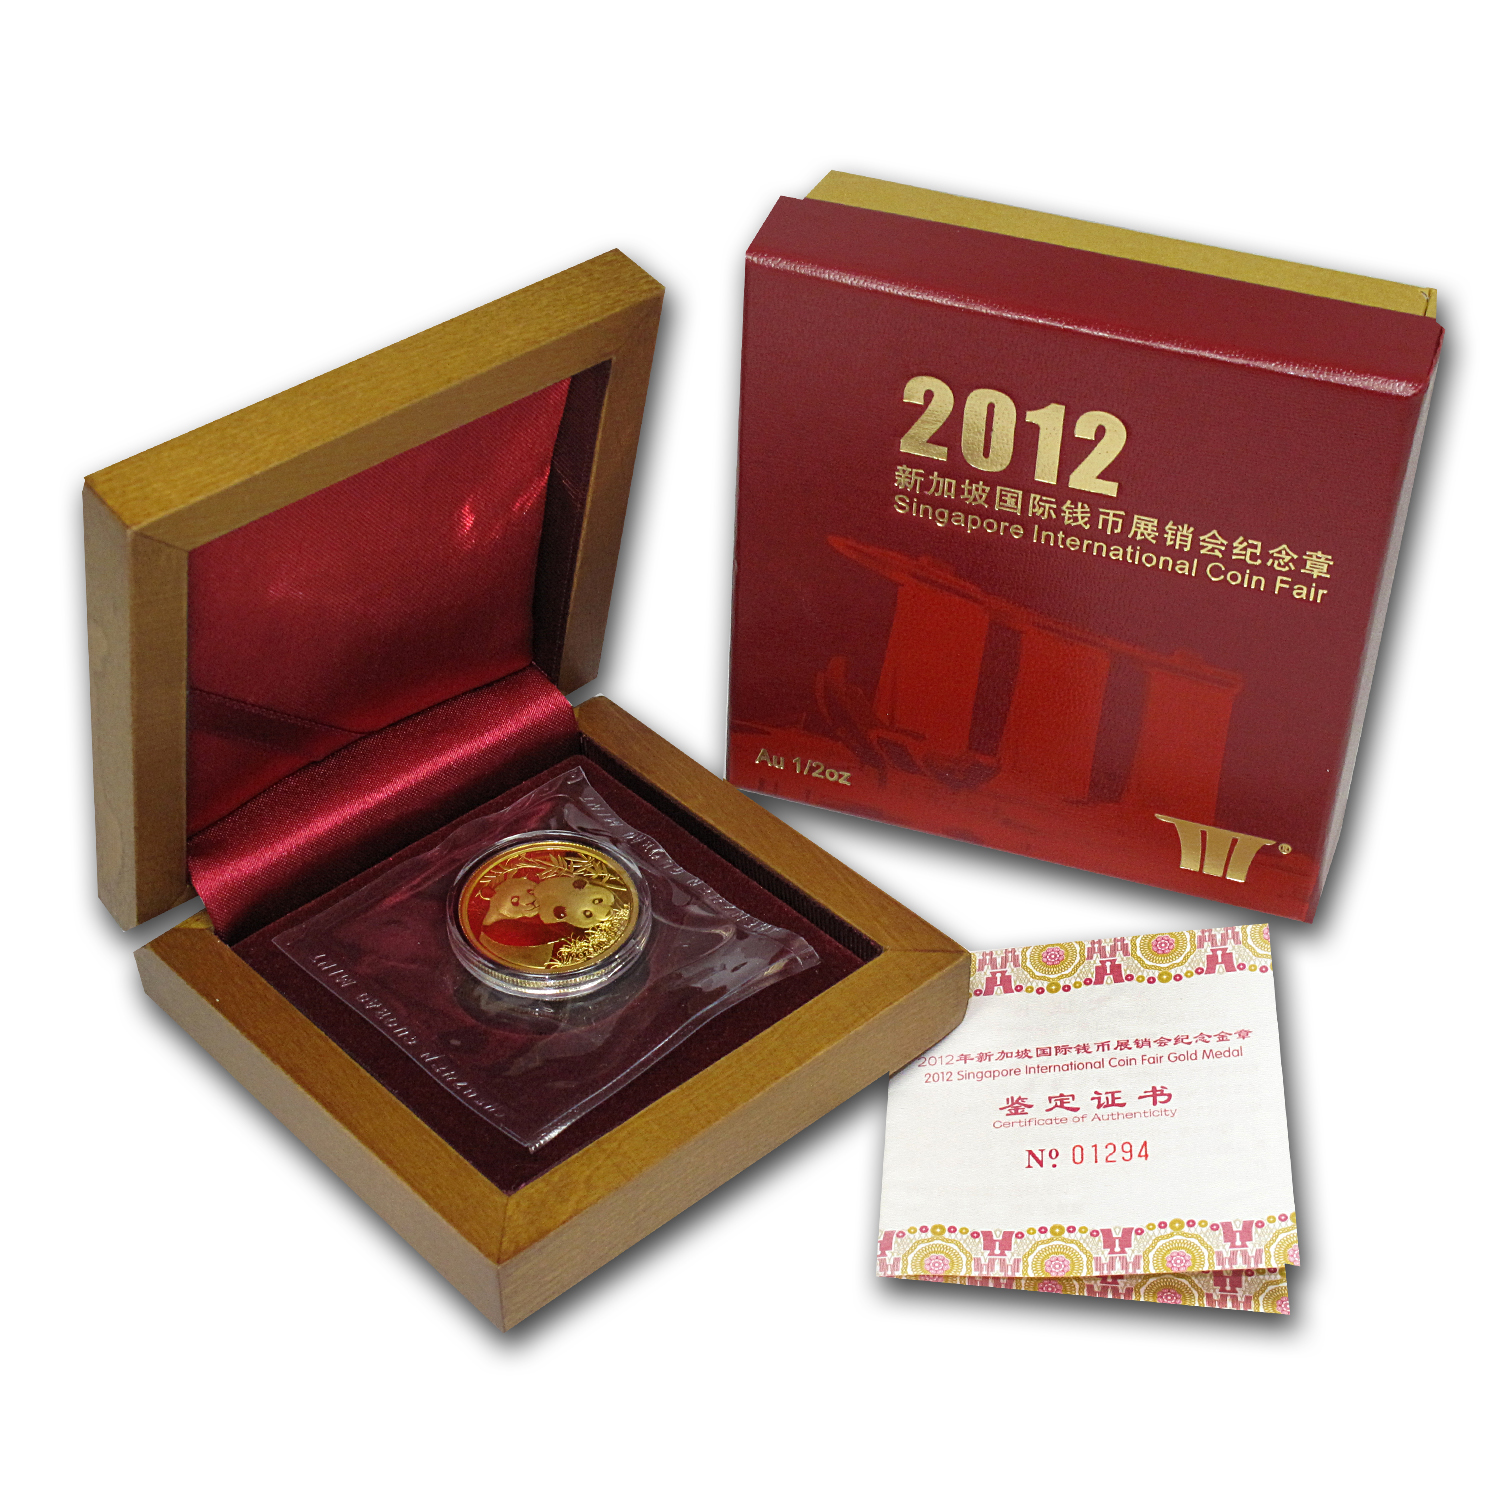 2012 1/2 oz Gold Chinese Panda Singapore Coin Fair (WBox & Coa)